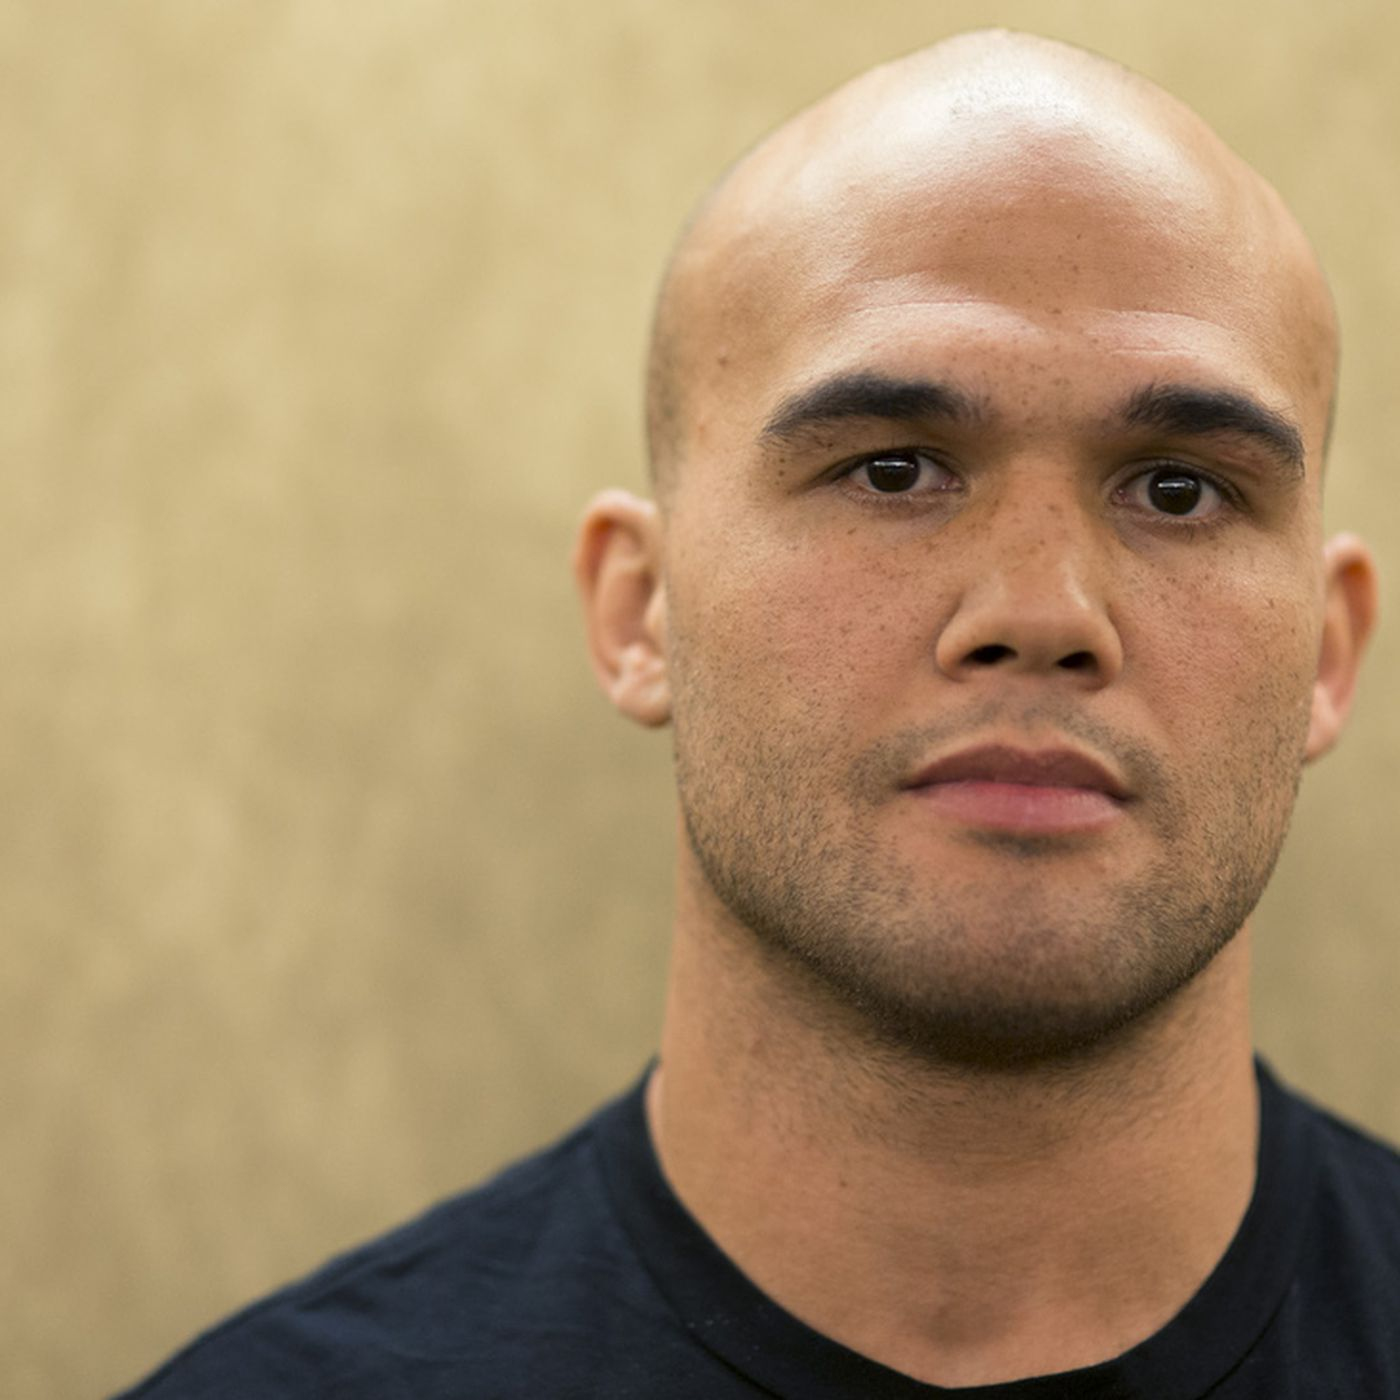 Robbie Lawler On His Career Resurgence I Expected This The Whole